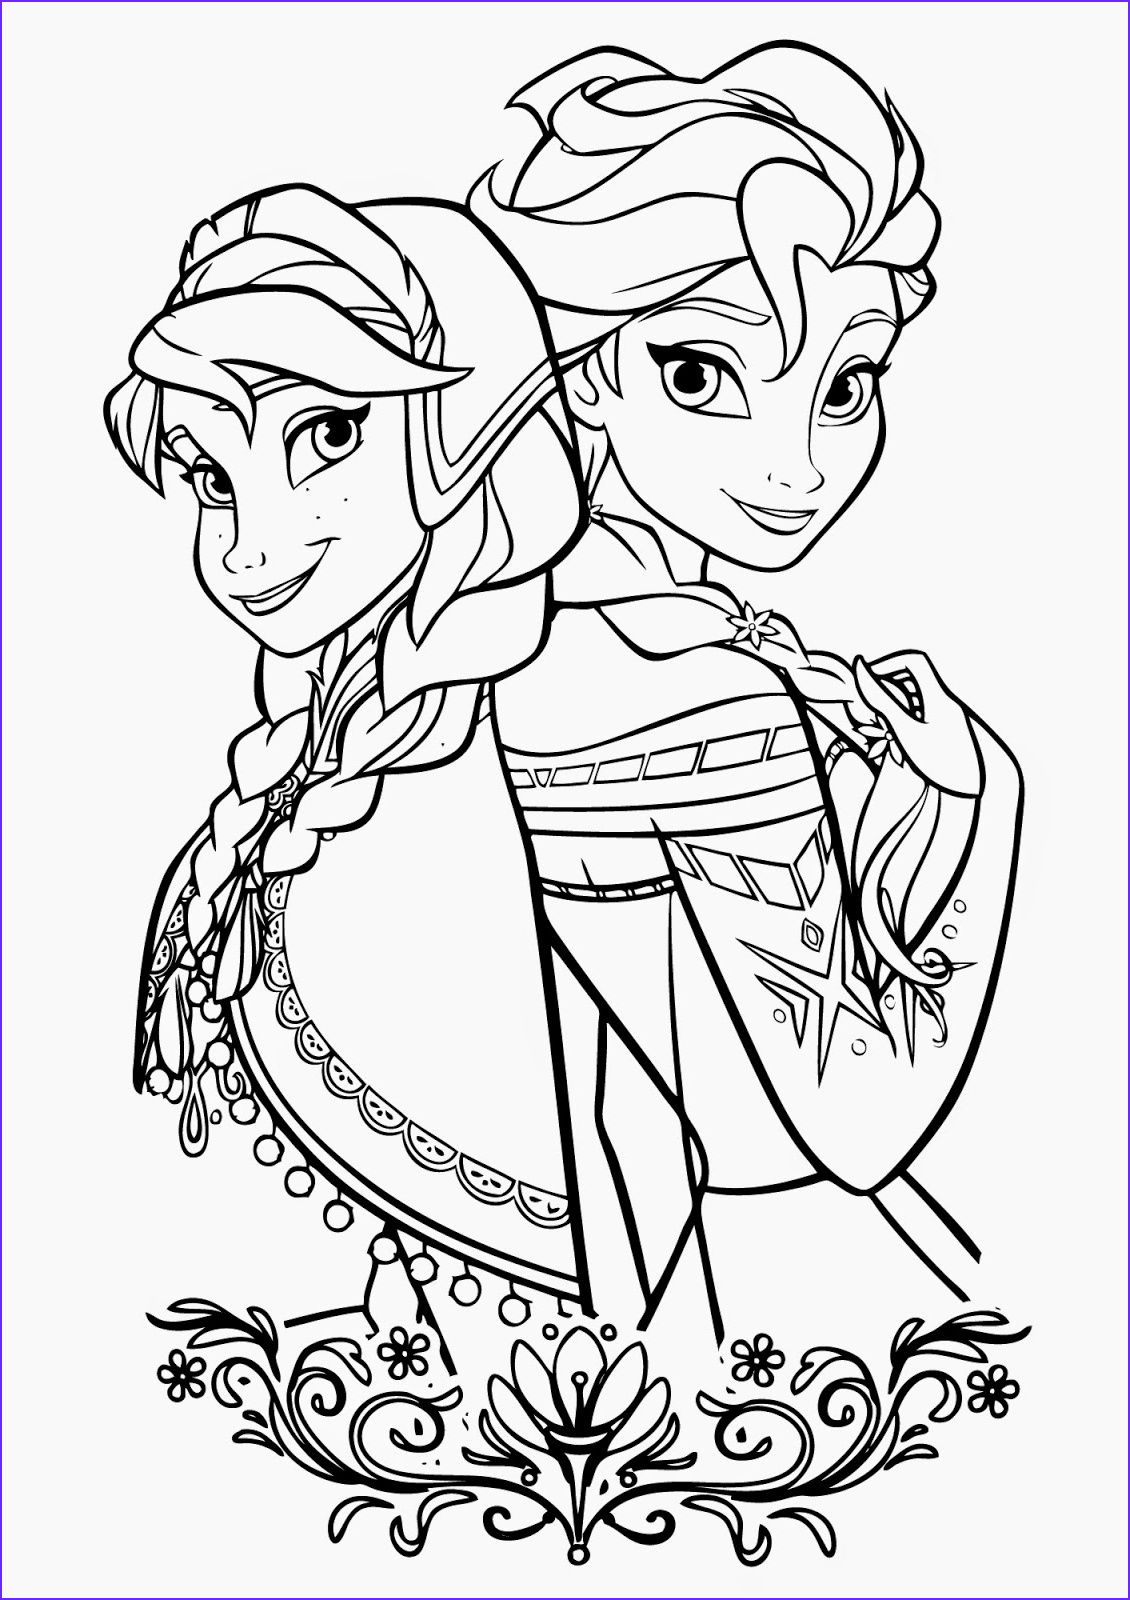 Coloring Coloring New Stock Free Printable Elsa Coloring Pages for Kids Best